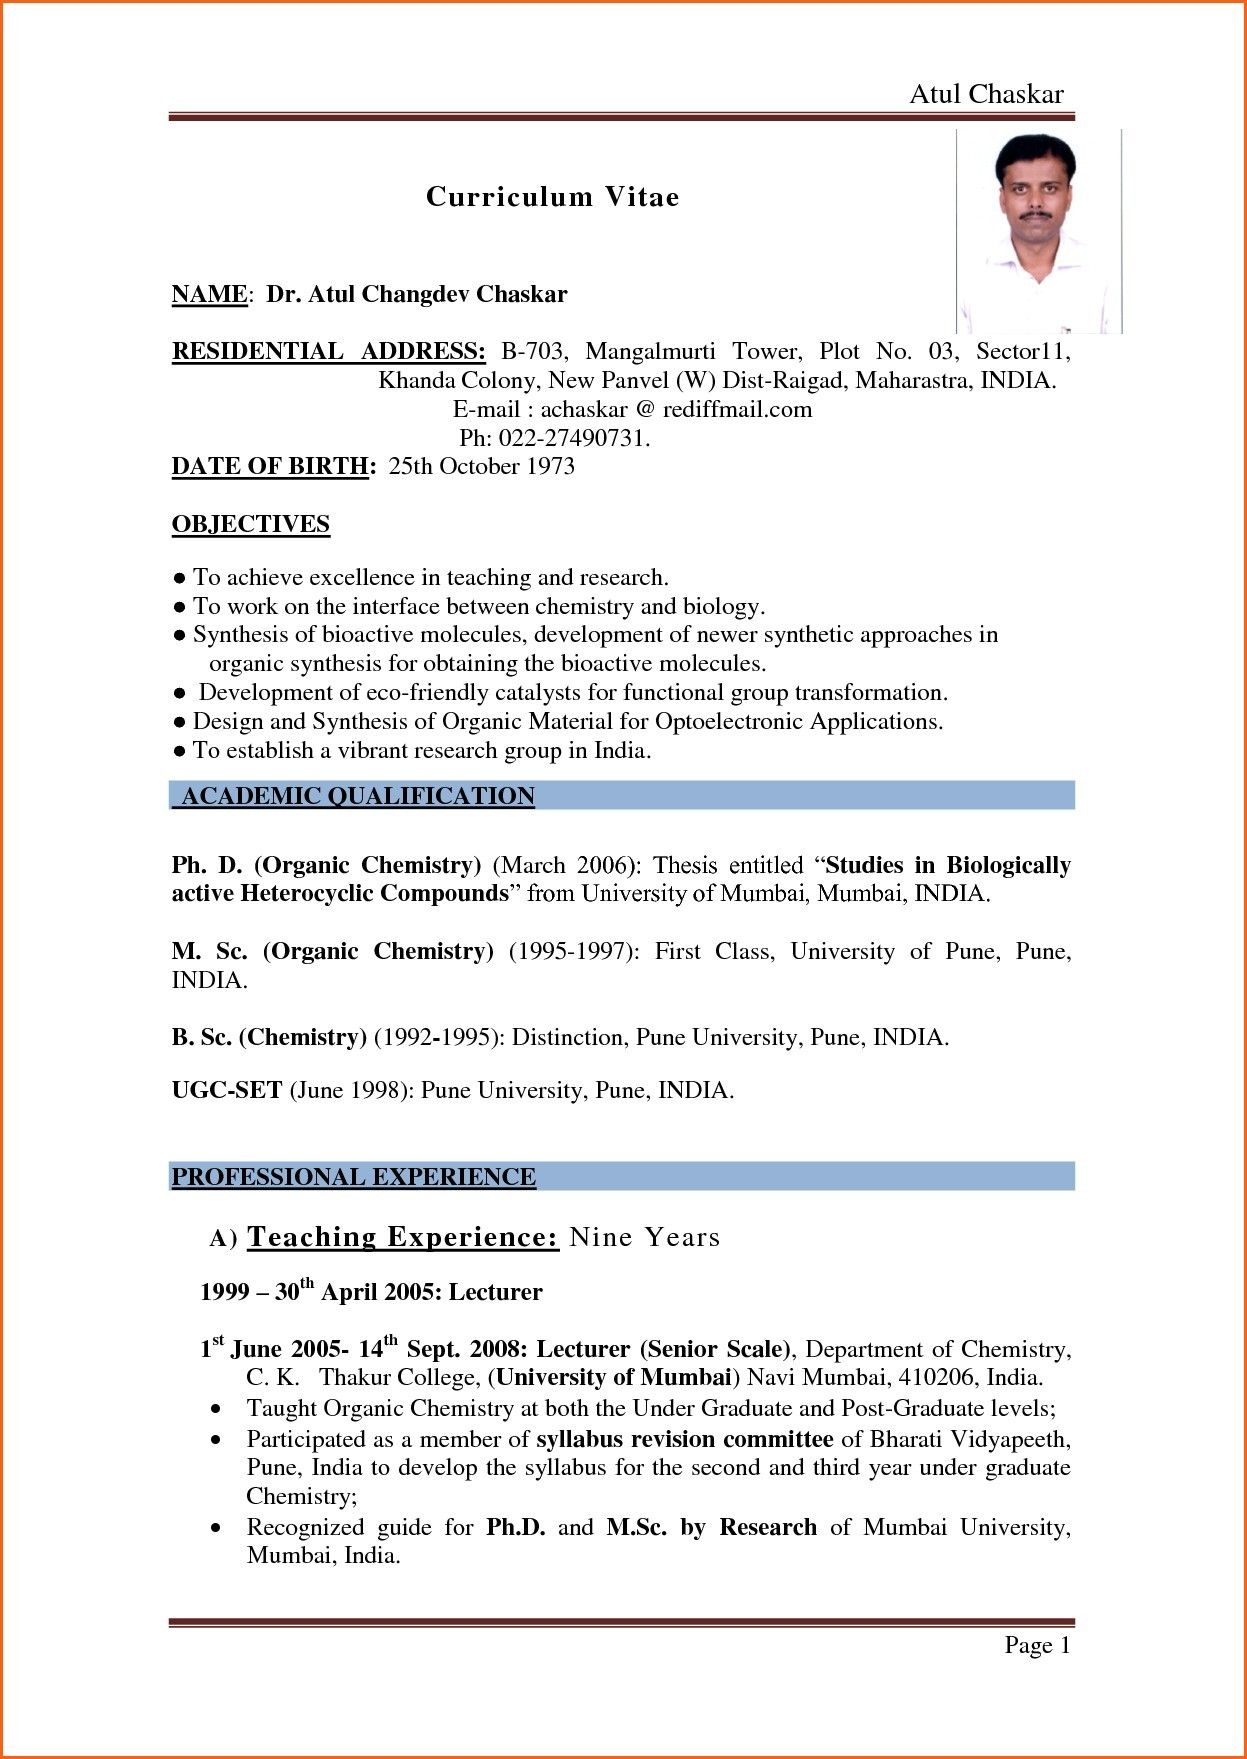 Sample Resume For Teachers In India Pdf At Resume Sample